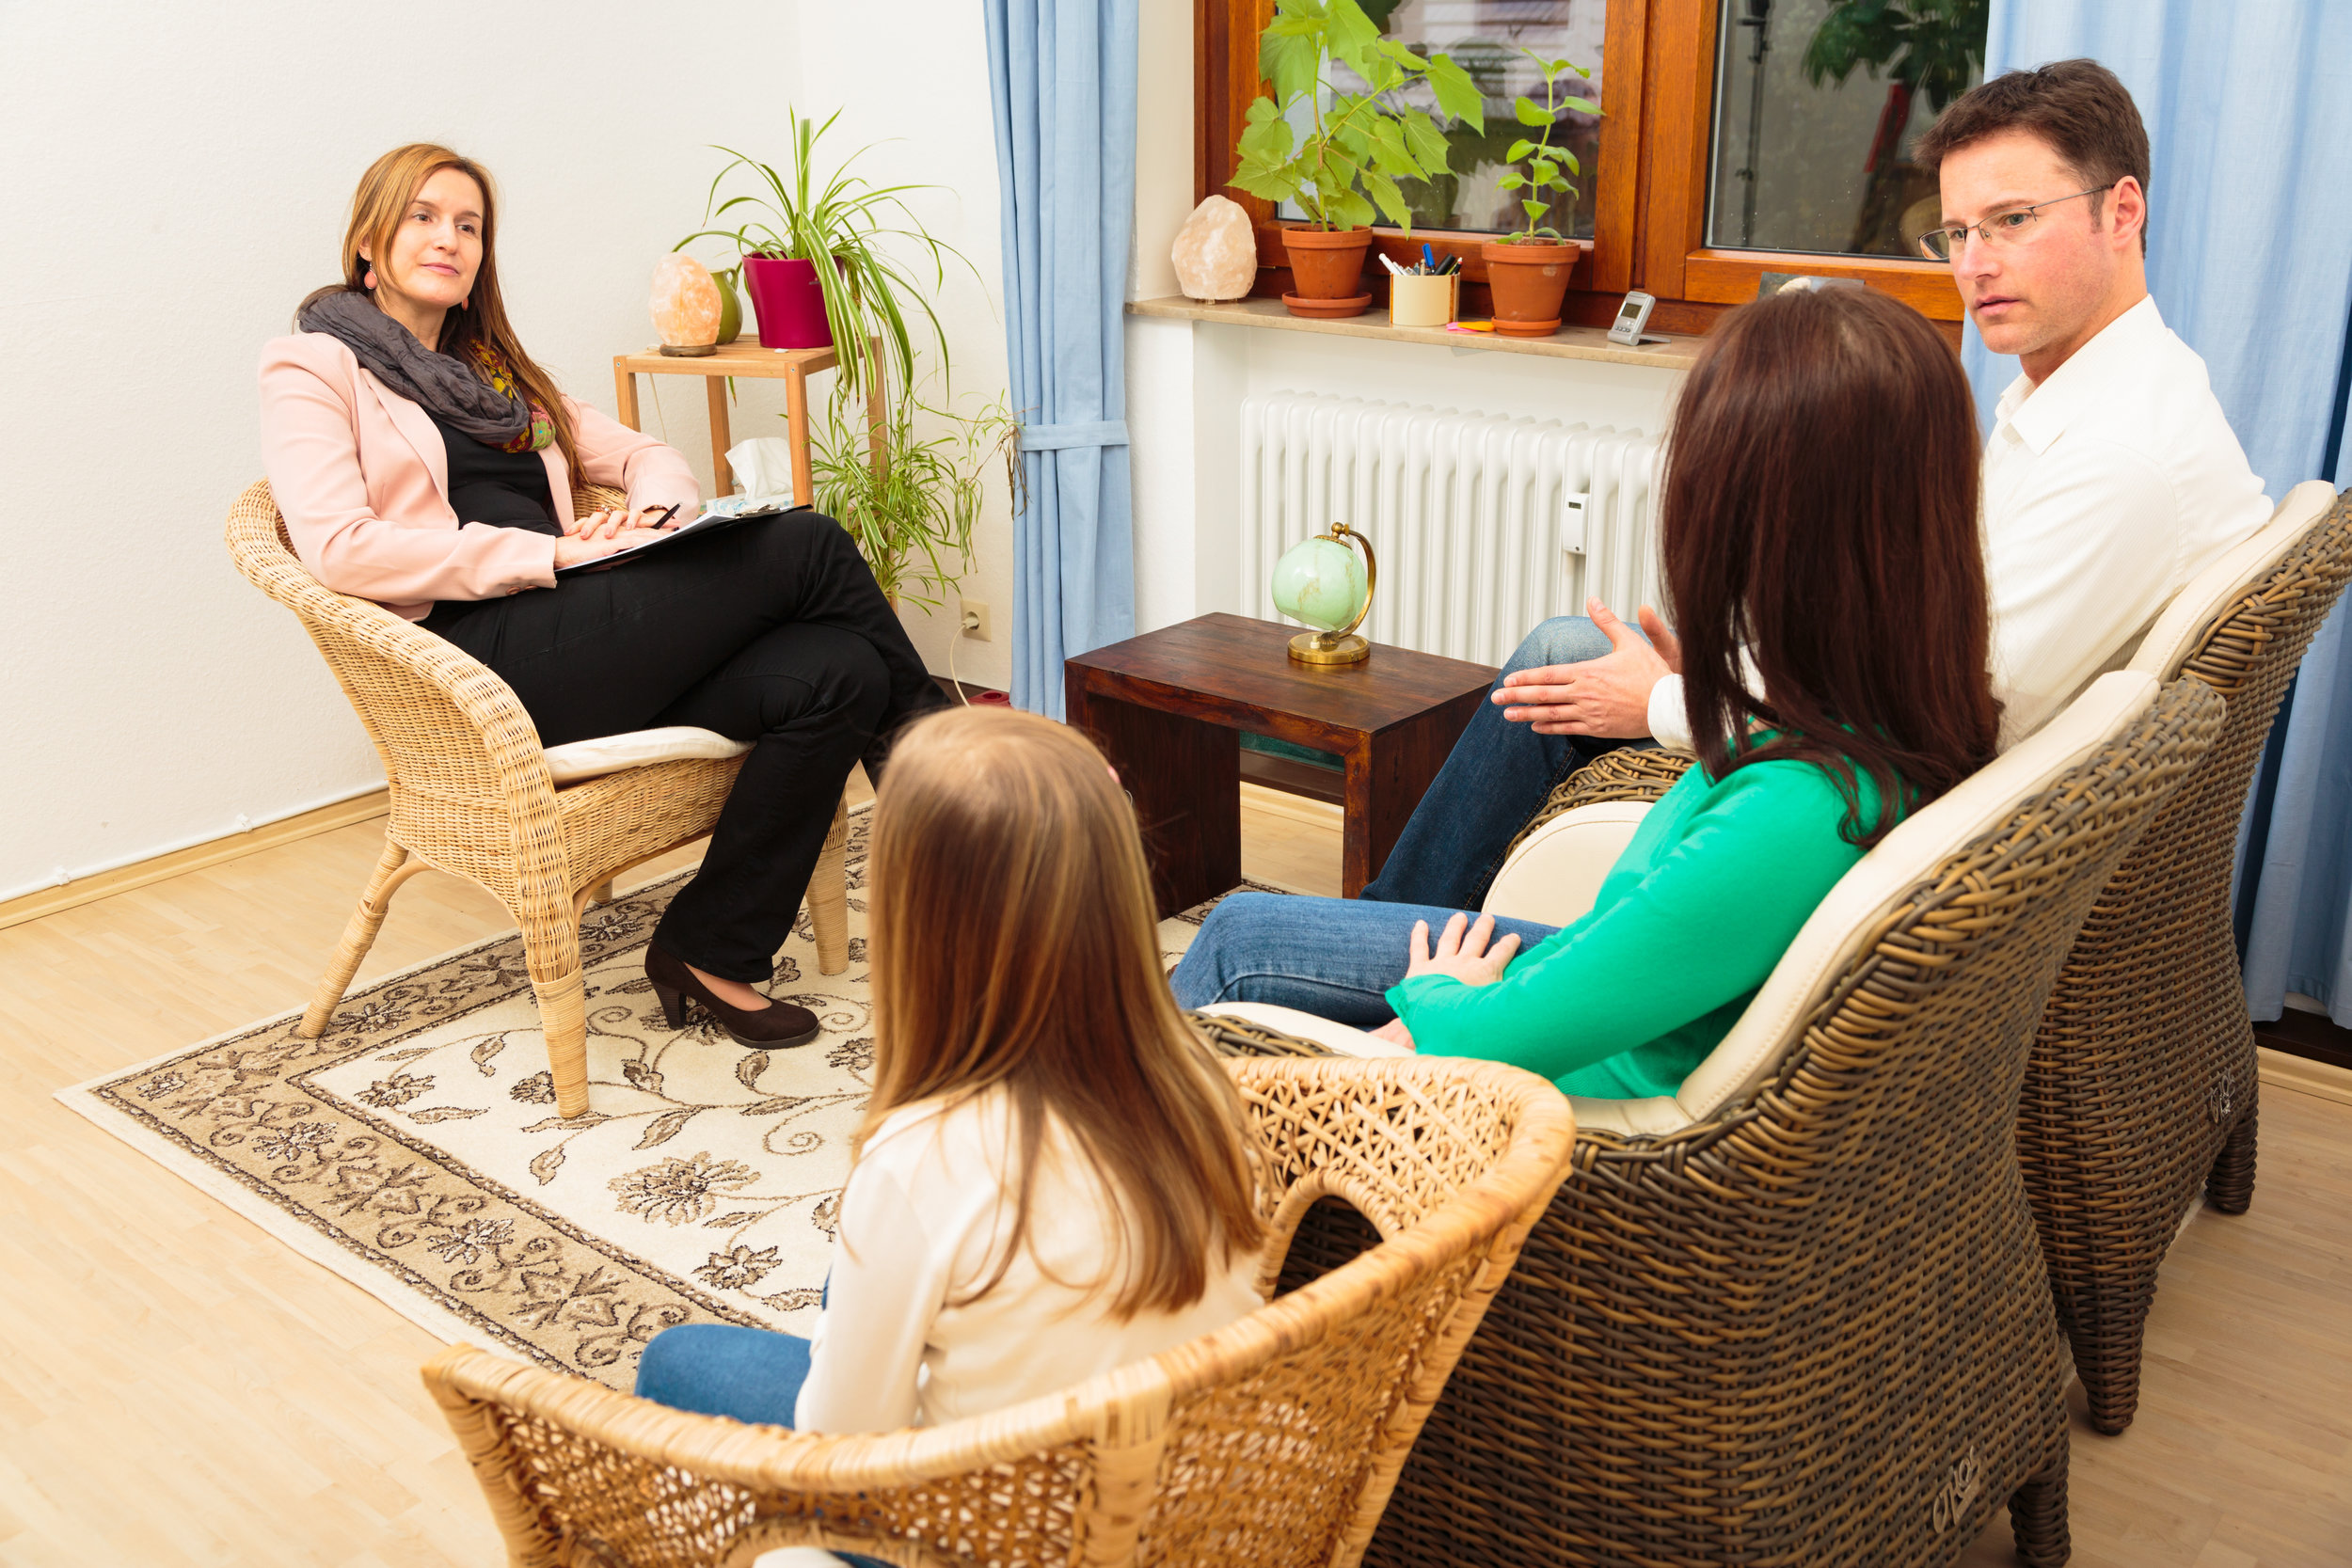 Welcome Families! - Family therapy differs from individual therapy in a very unique way. This is because in family therapy the focus is on the entire family system and how each person contributes to the relationships. Each member plays a role in the family and therapy can help redefine or define for the first time what those roles are.